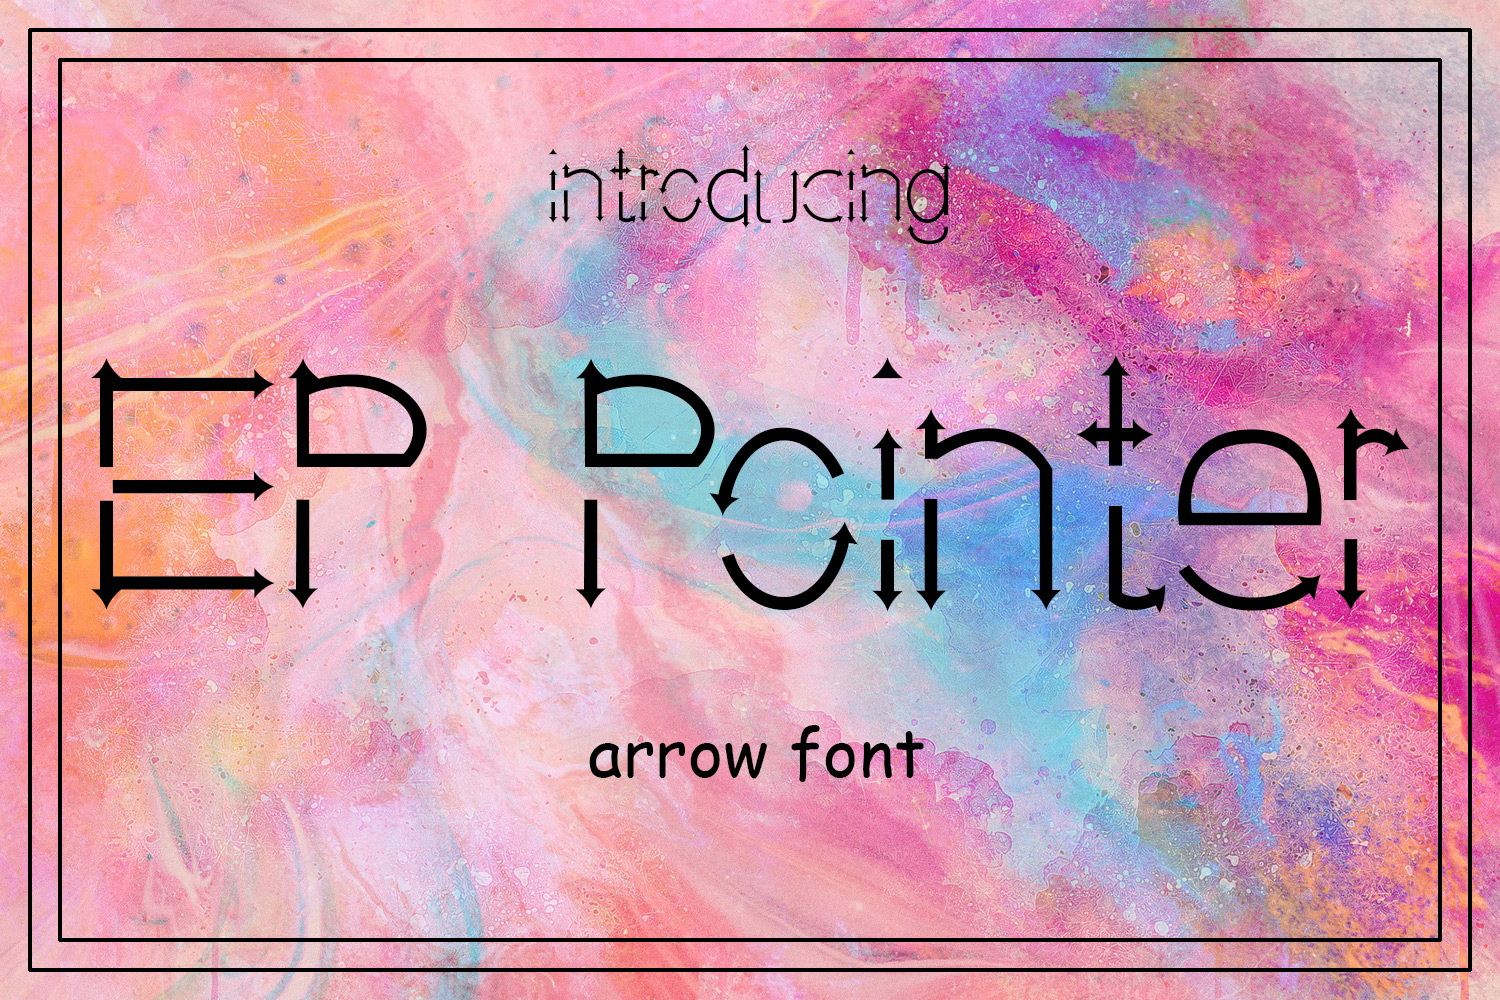 EP Pointer - An Arrow Font example image 1